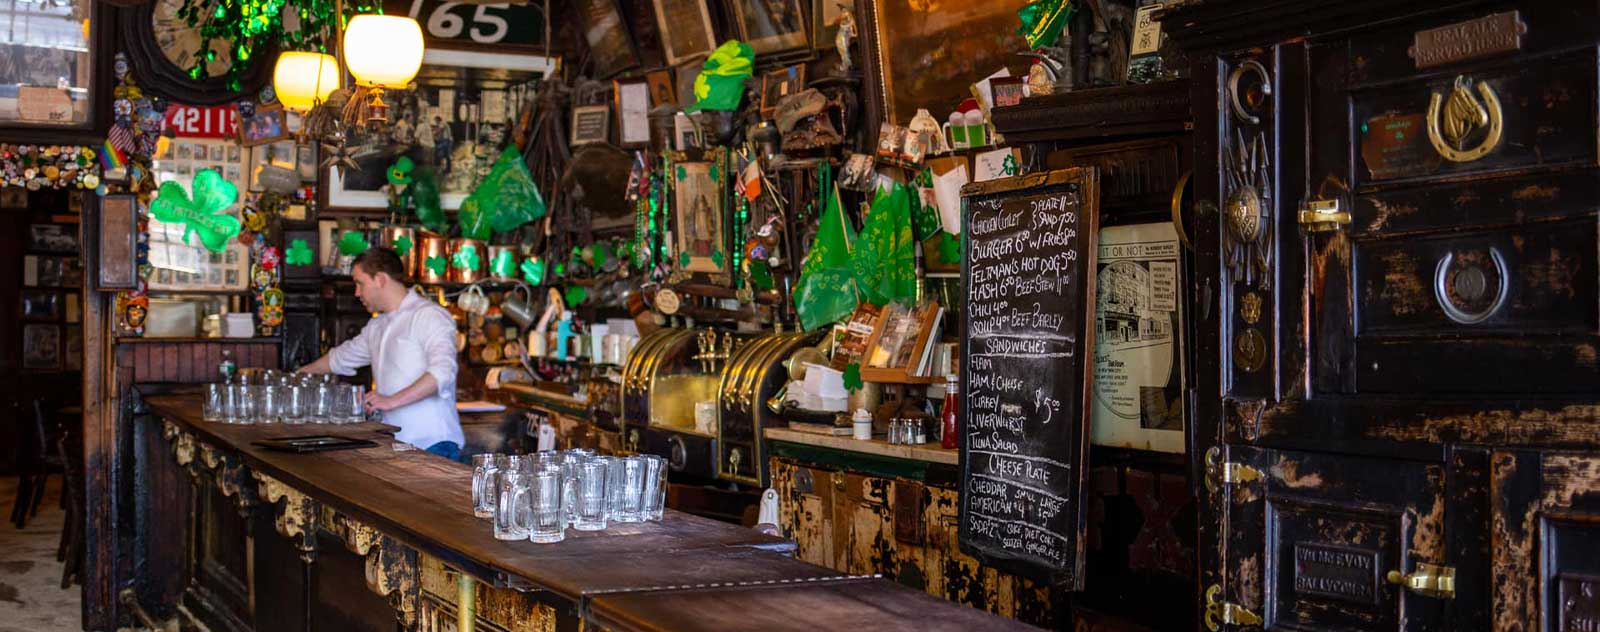 mcsorley s old ale house bar new york